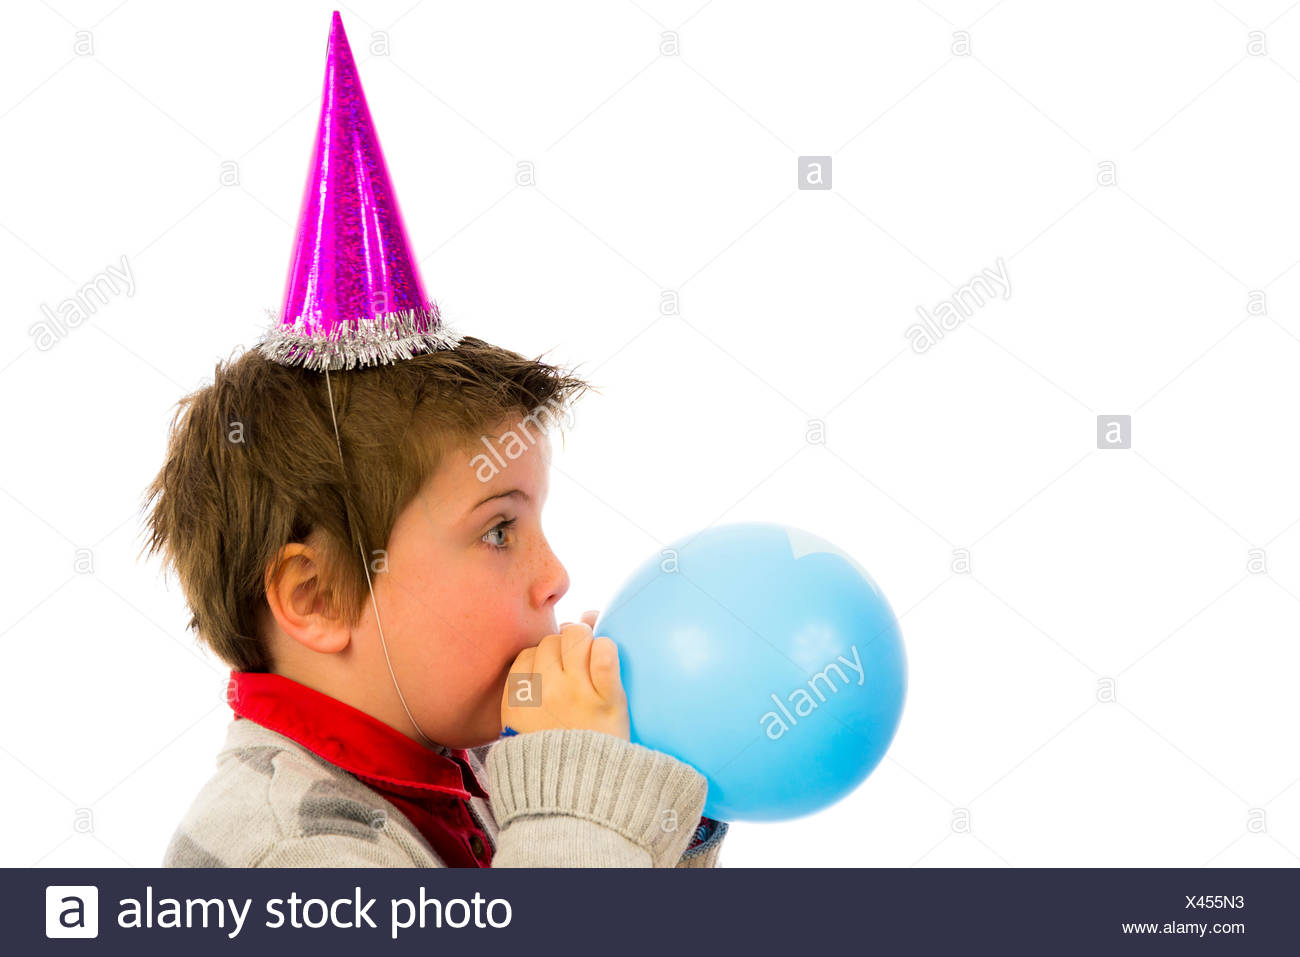 blow up balloons for having sex